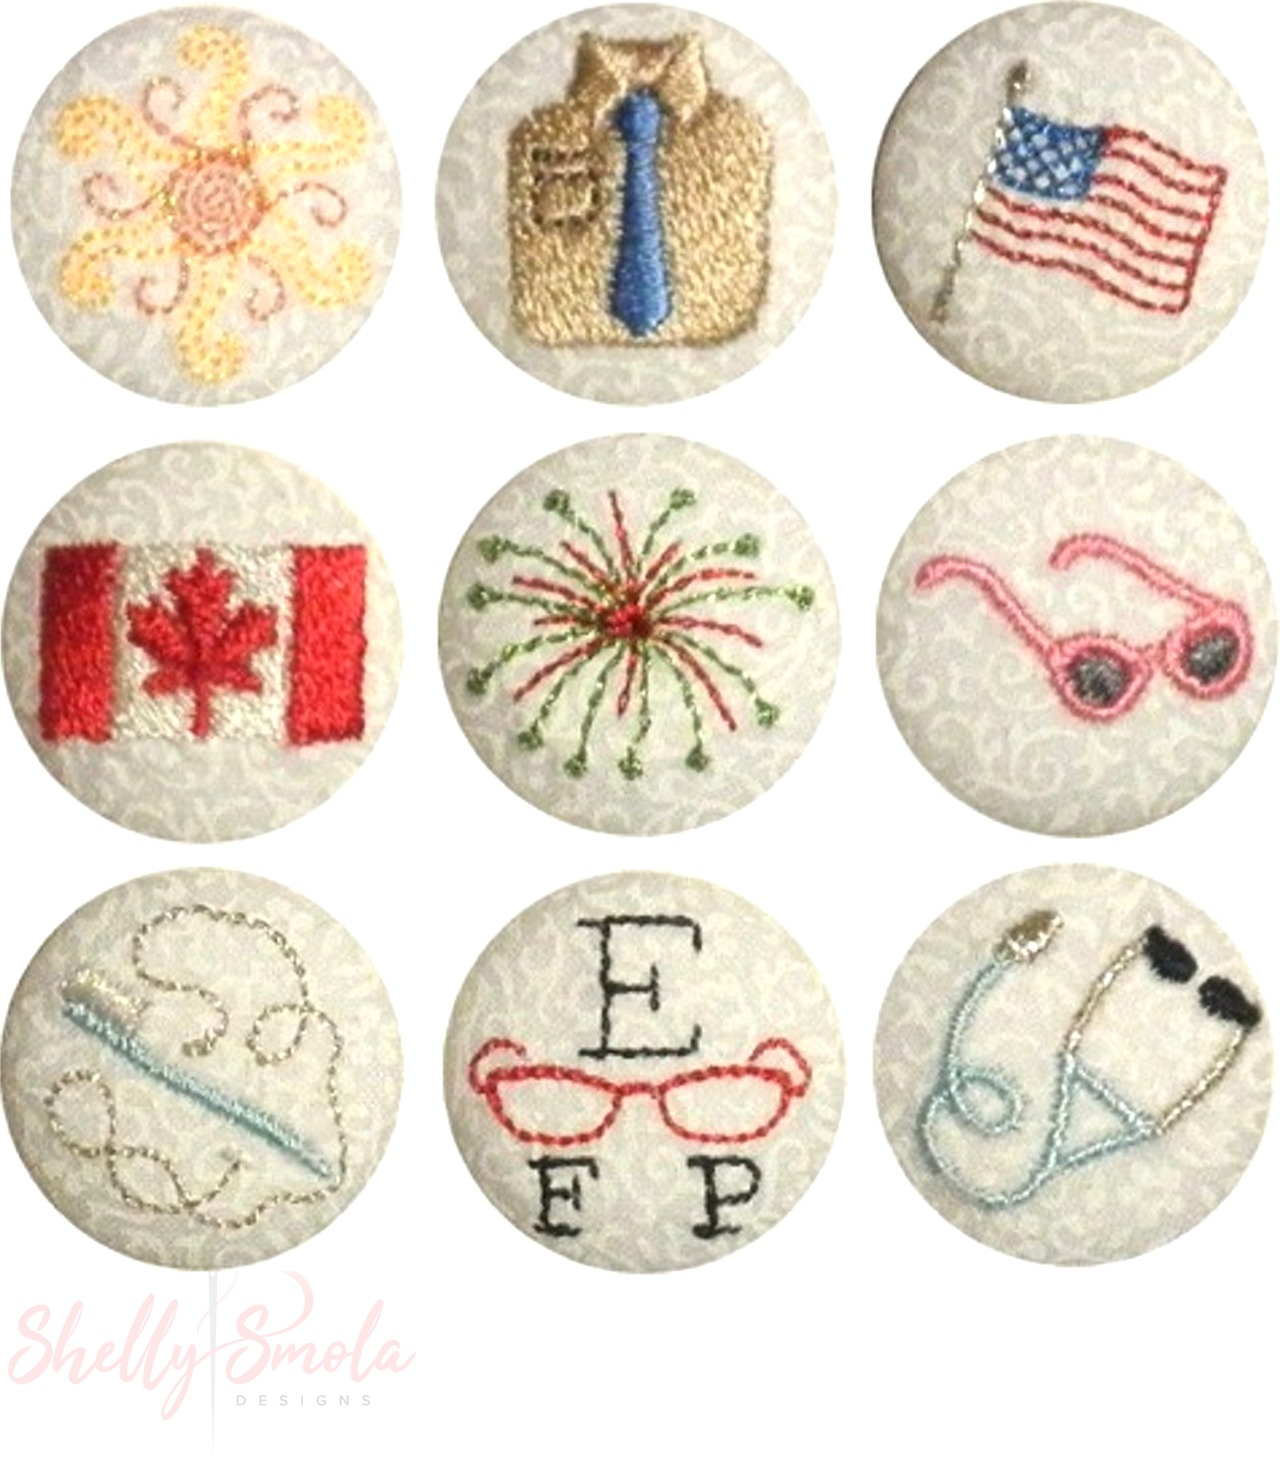 Summer Holiday Button Covers by Shelly Smola